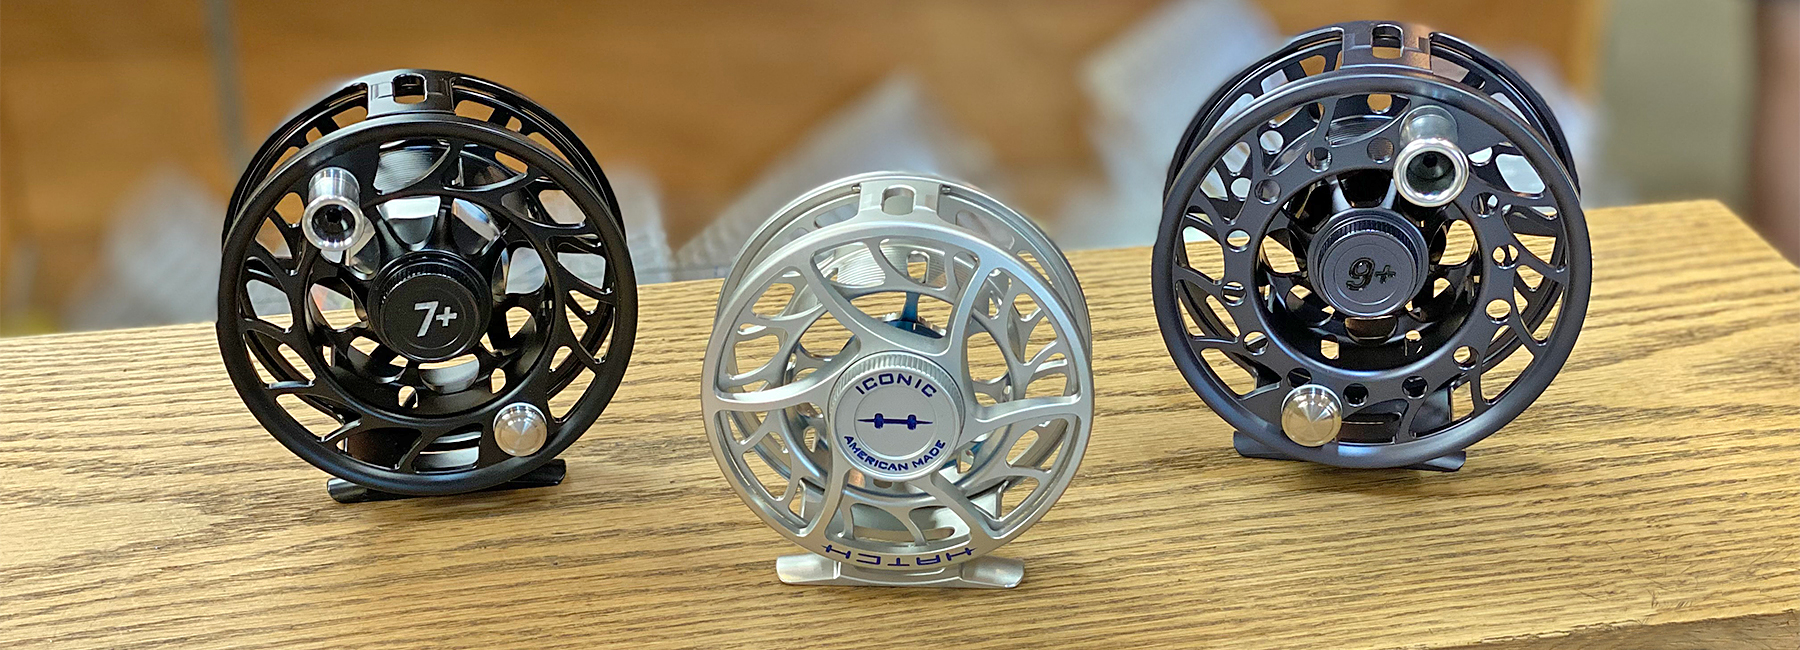 Gear Review: The Hatch Iconic Fly Reel